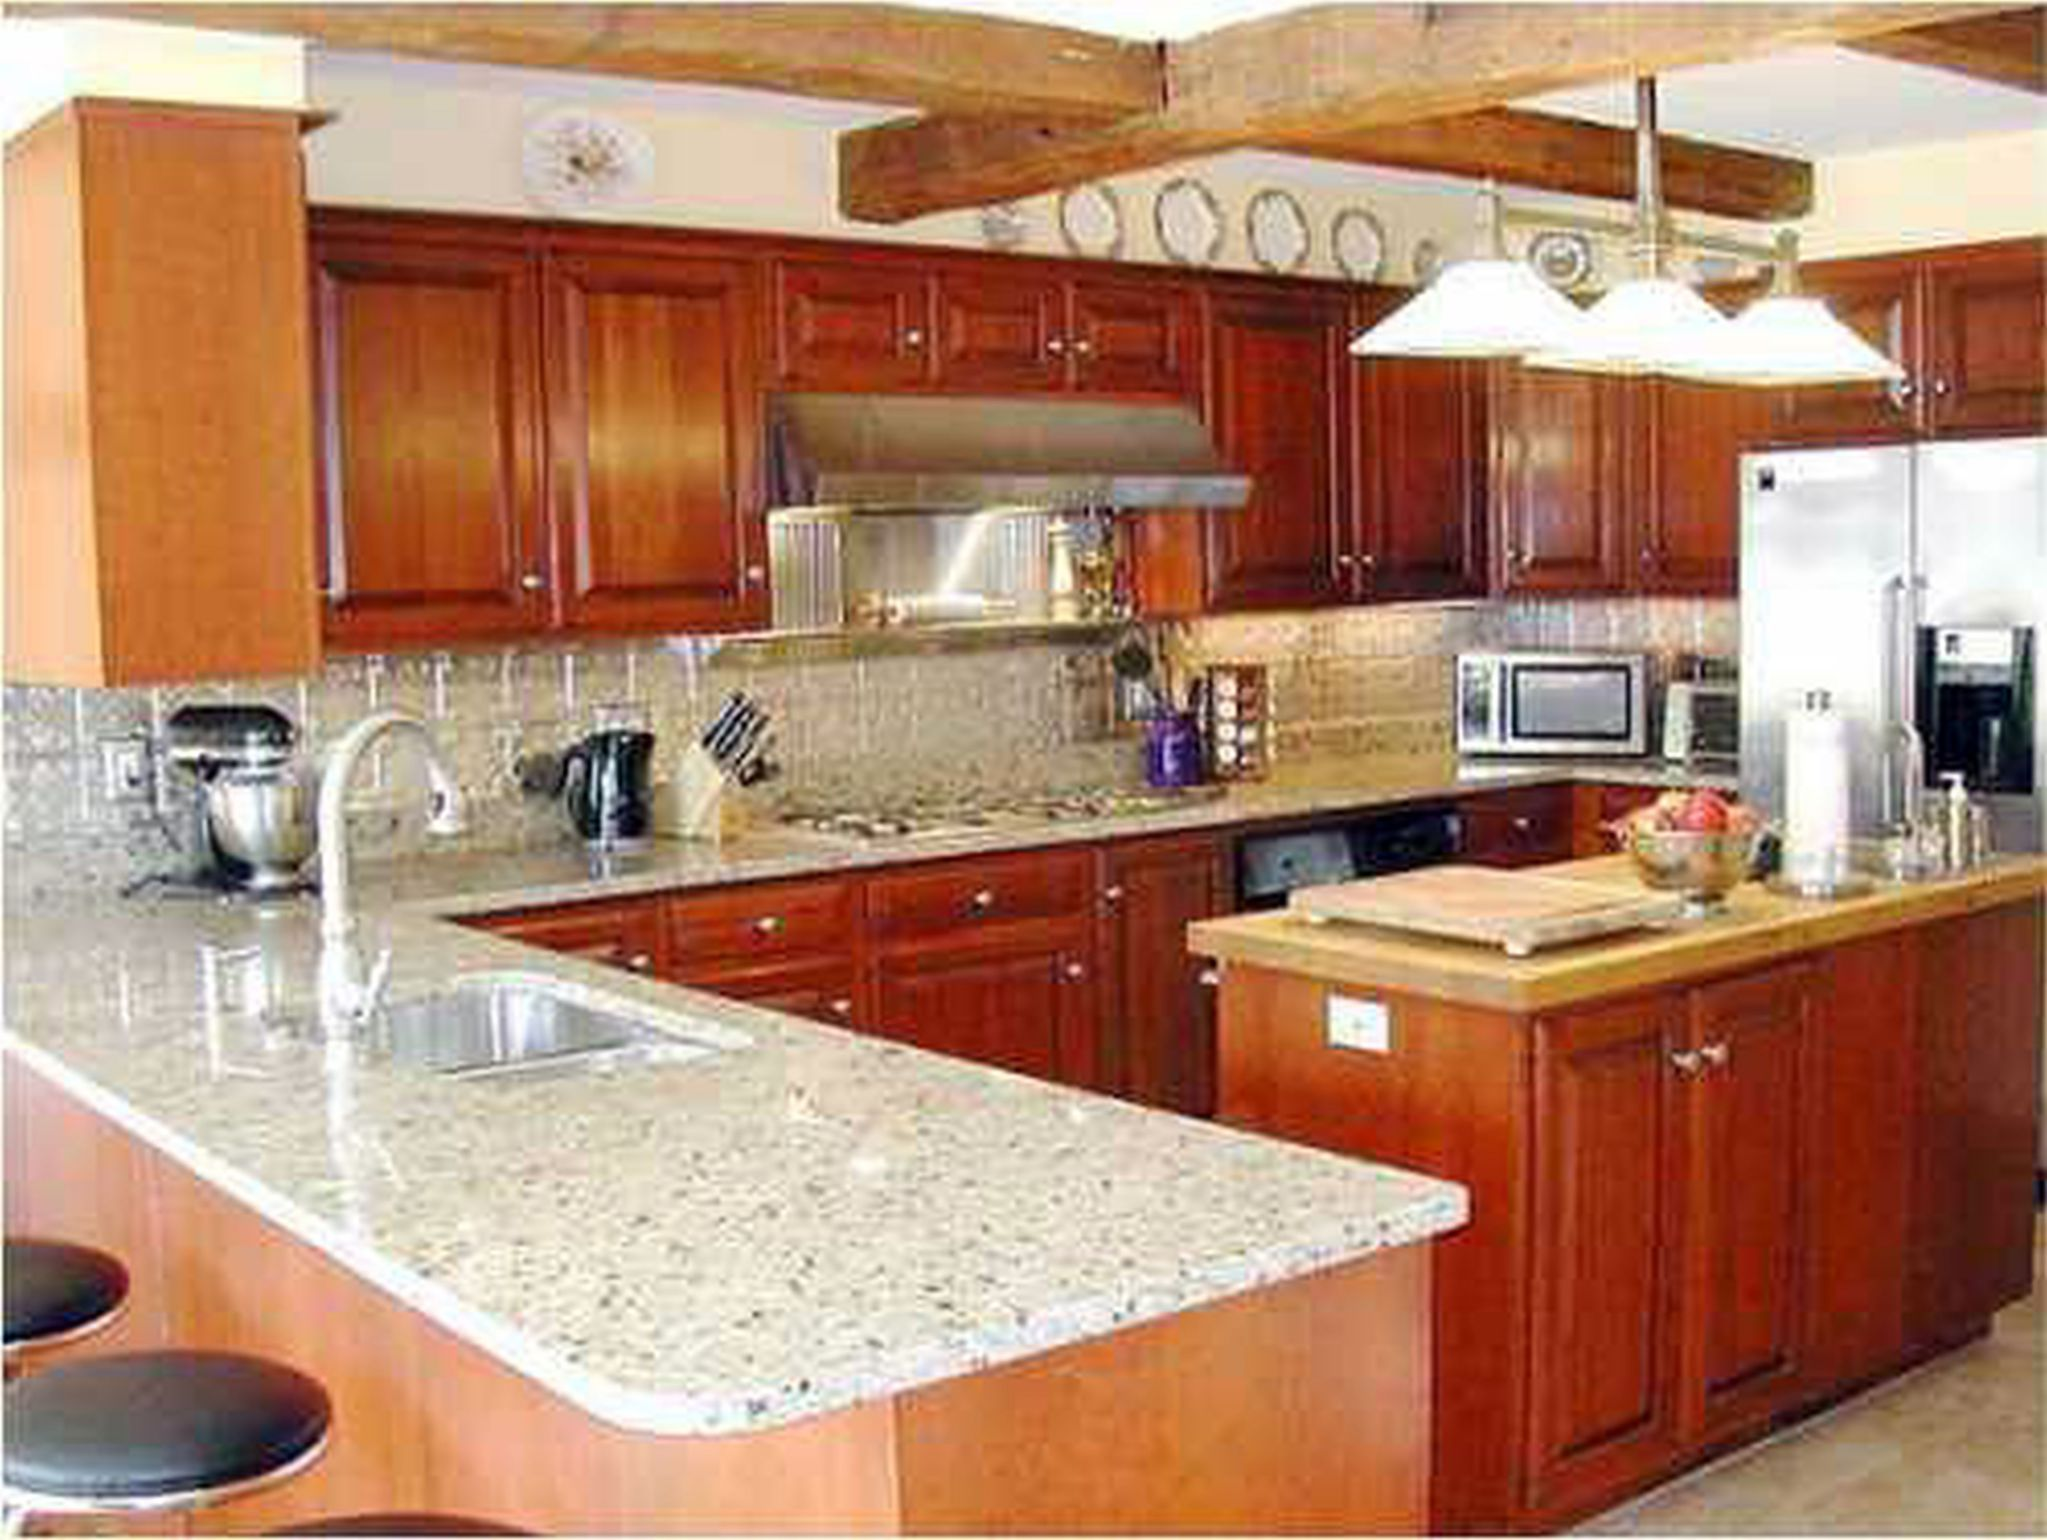 Kitchen counter decor ideas to make your cooking space for Best kitchen renovation ideas